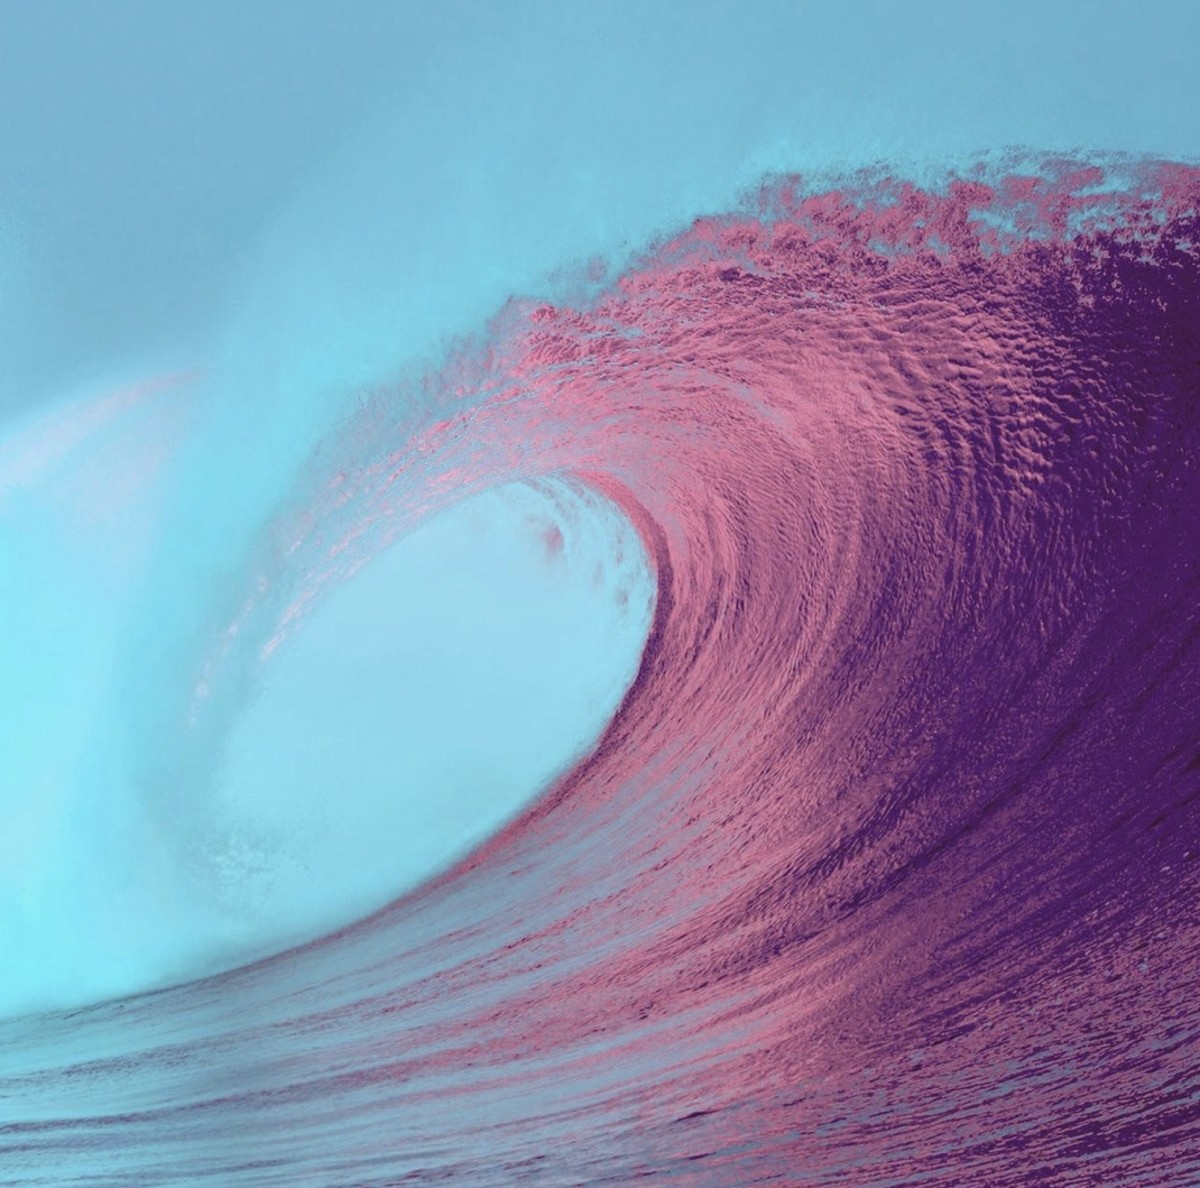 Surf Poem: The Maleficent Curl